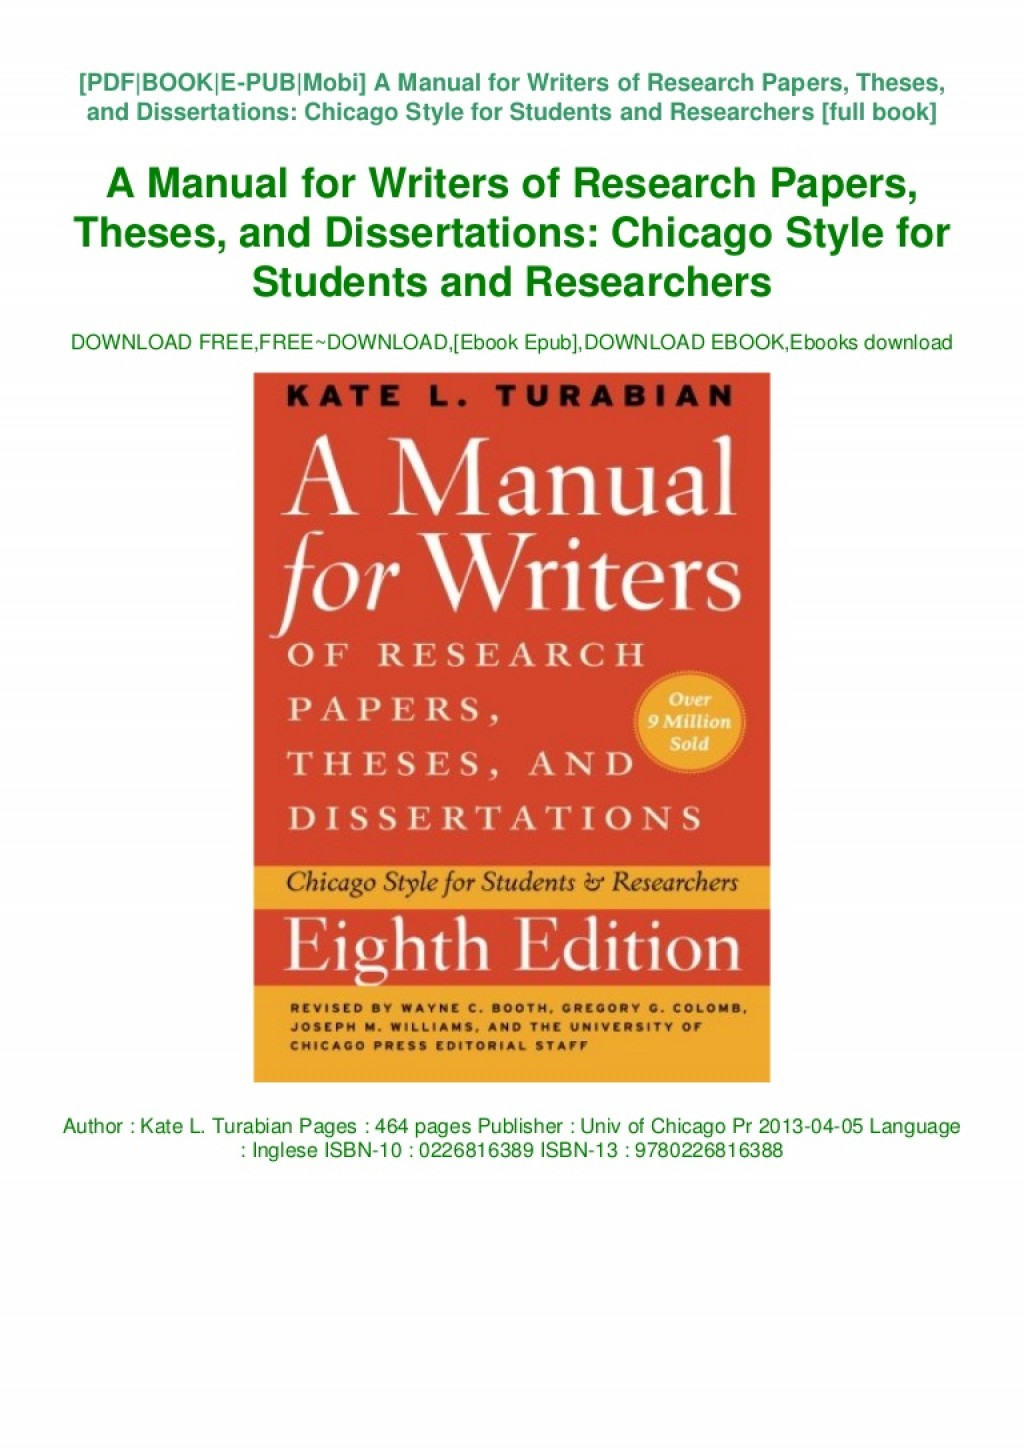 005 Book Manual For Writers Of Researchs Theses And Thumbnail Dissertations Sensational A Research Papers Ed. 8 8th Edition Ninth Pdf Large